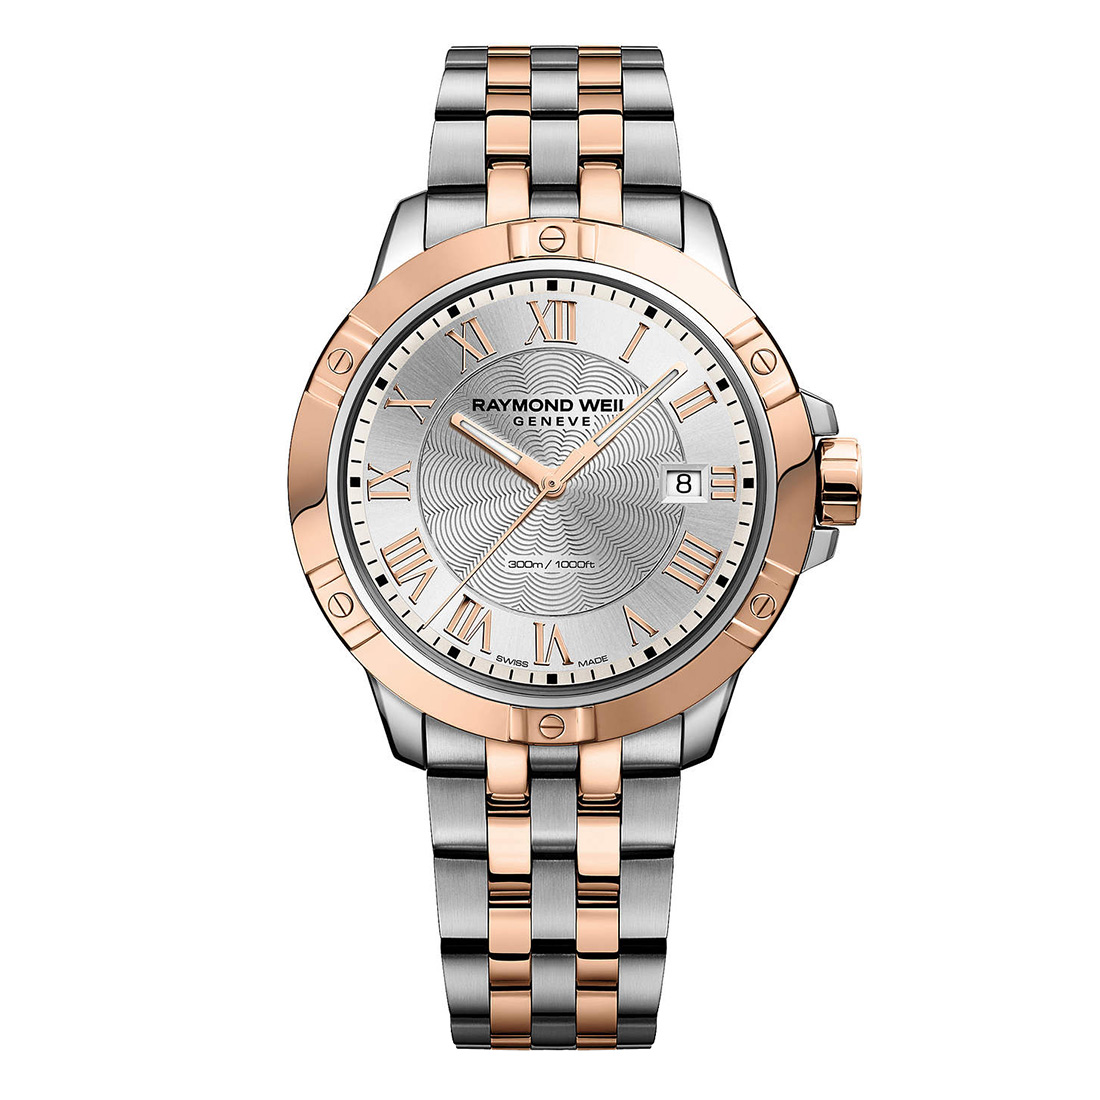 Raymond Weil Two Tone Bracelet Watch